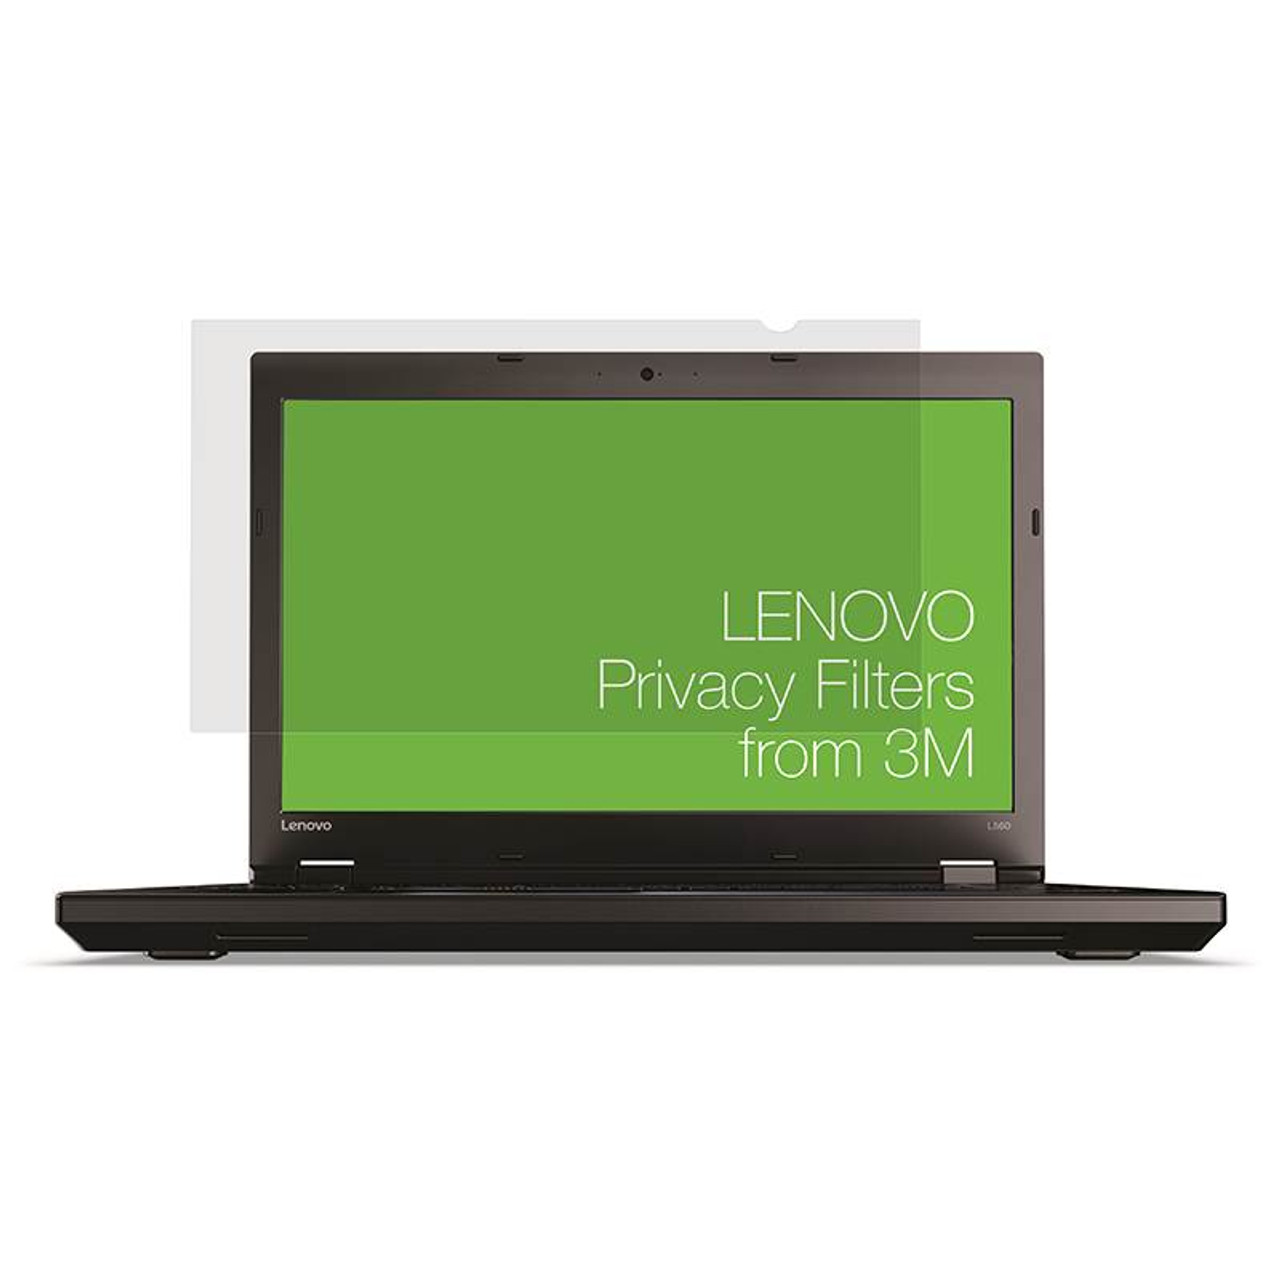 Image for Lenovo 13.3W9 Laptop Privacy Filter from 3M CX Computer Superstore